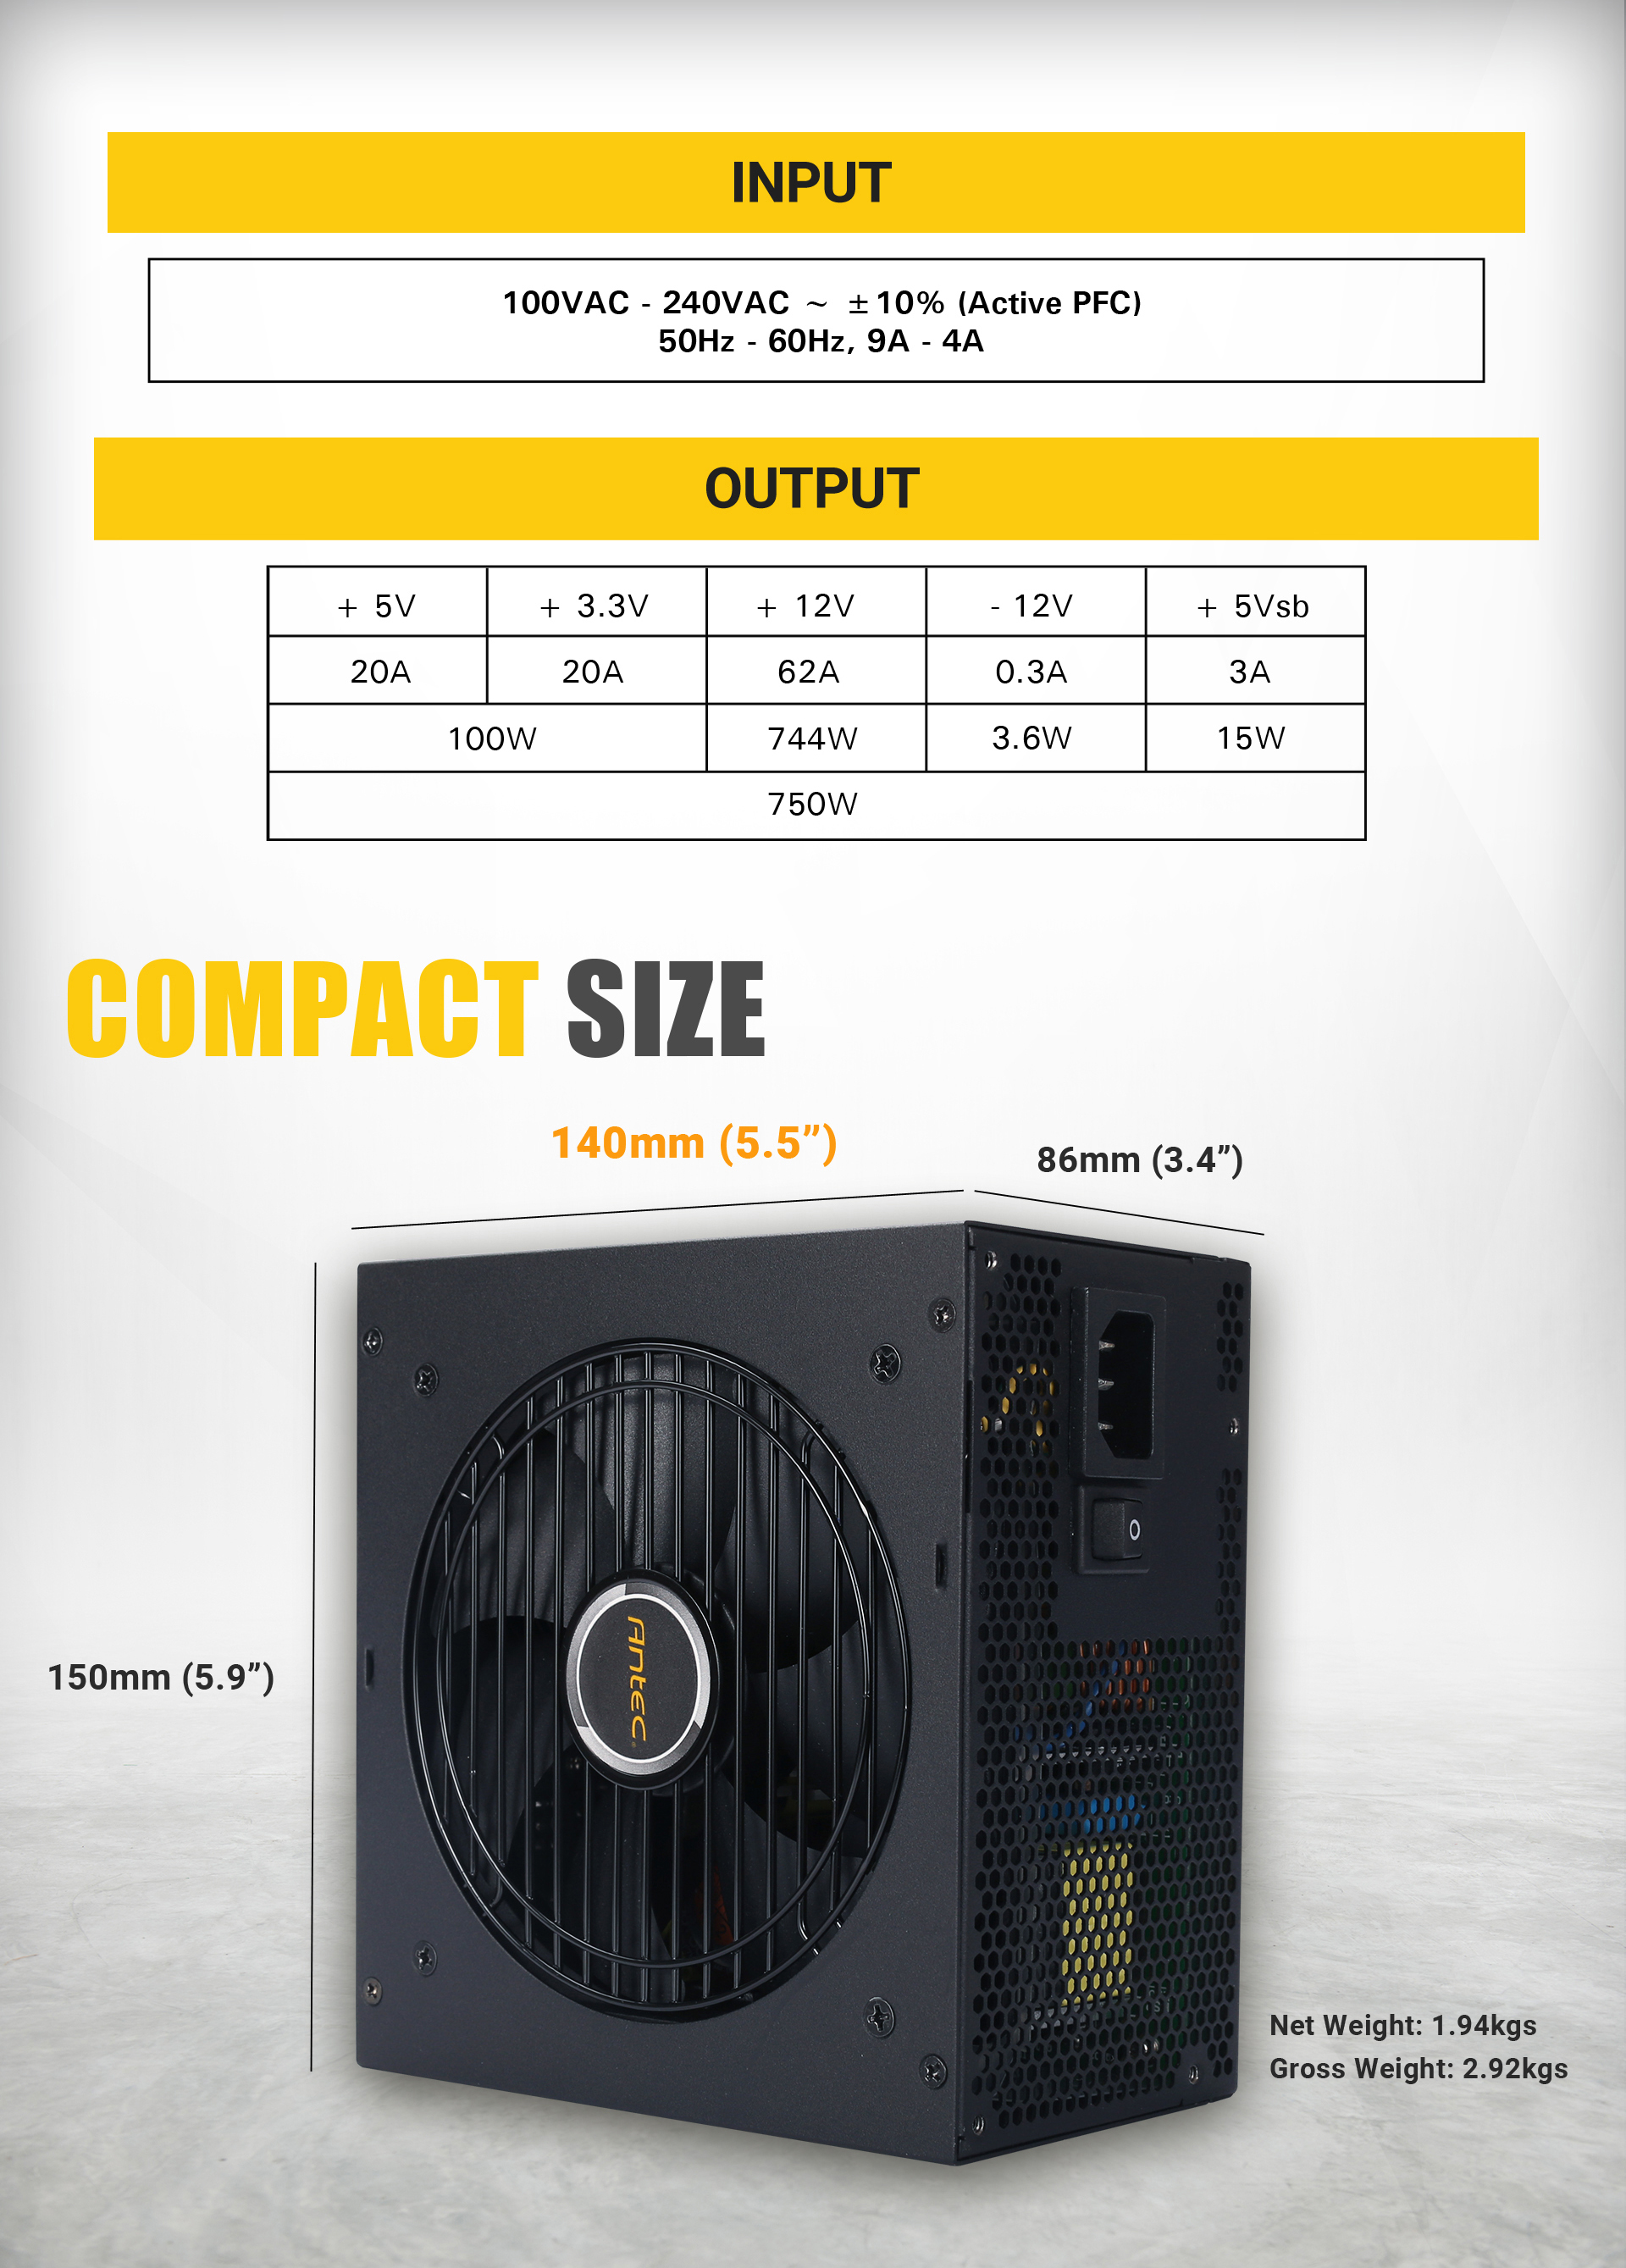 Input and Output Specs for the Antec NeoECO Power Supply Above the Power Supply Angled to the Left with Text and graphics indicating its compact size of 3.4 inches height, 5.5 inches width and 5.9 inch length, along with a net weight of 1.94kg and gross weight of 2.92kg